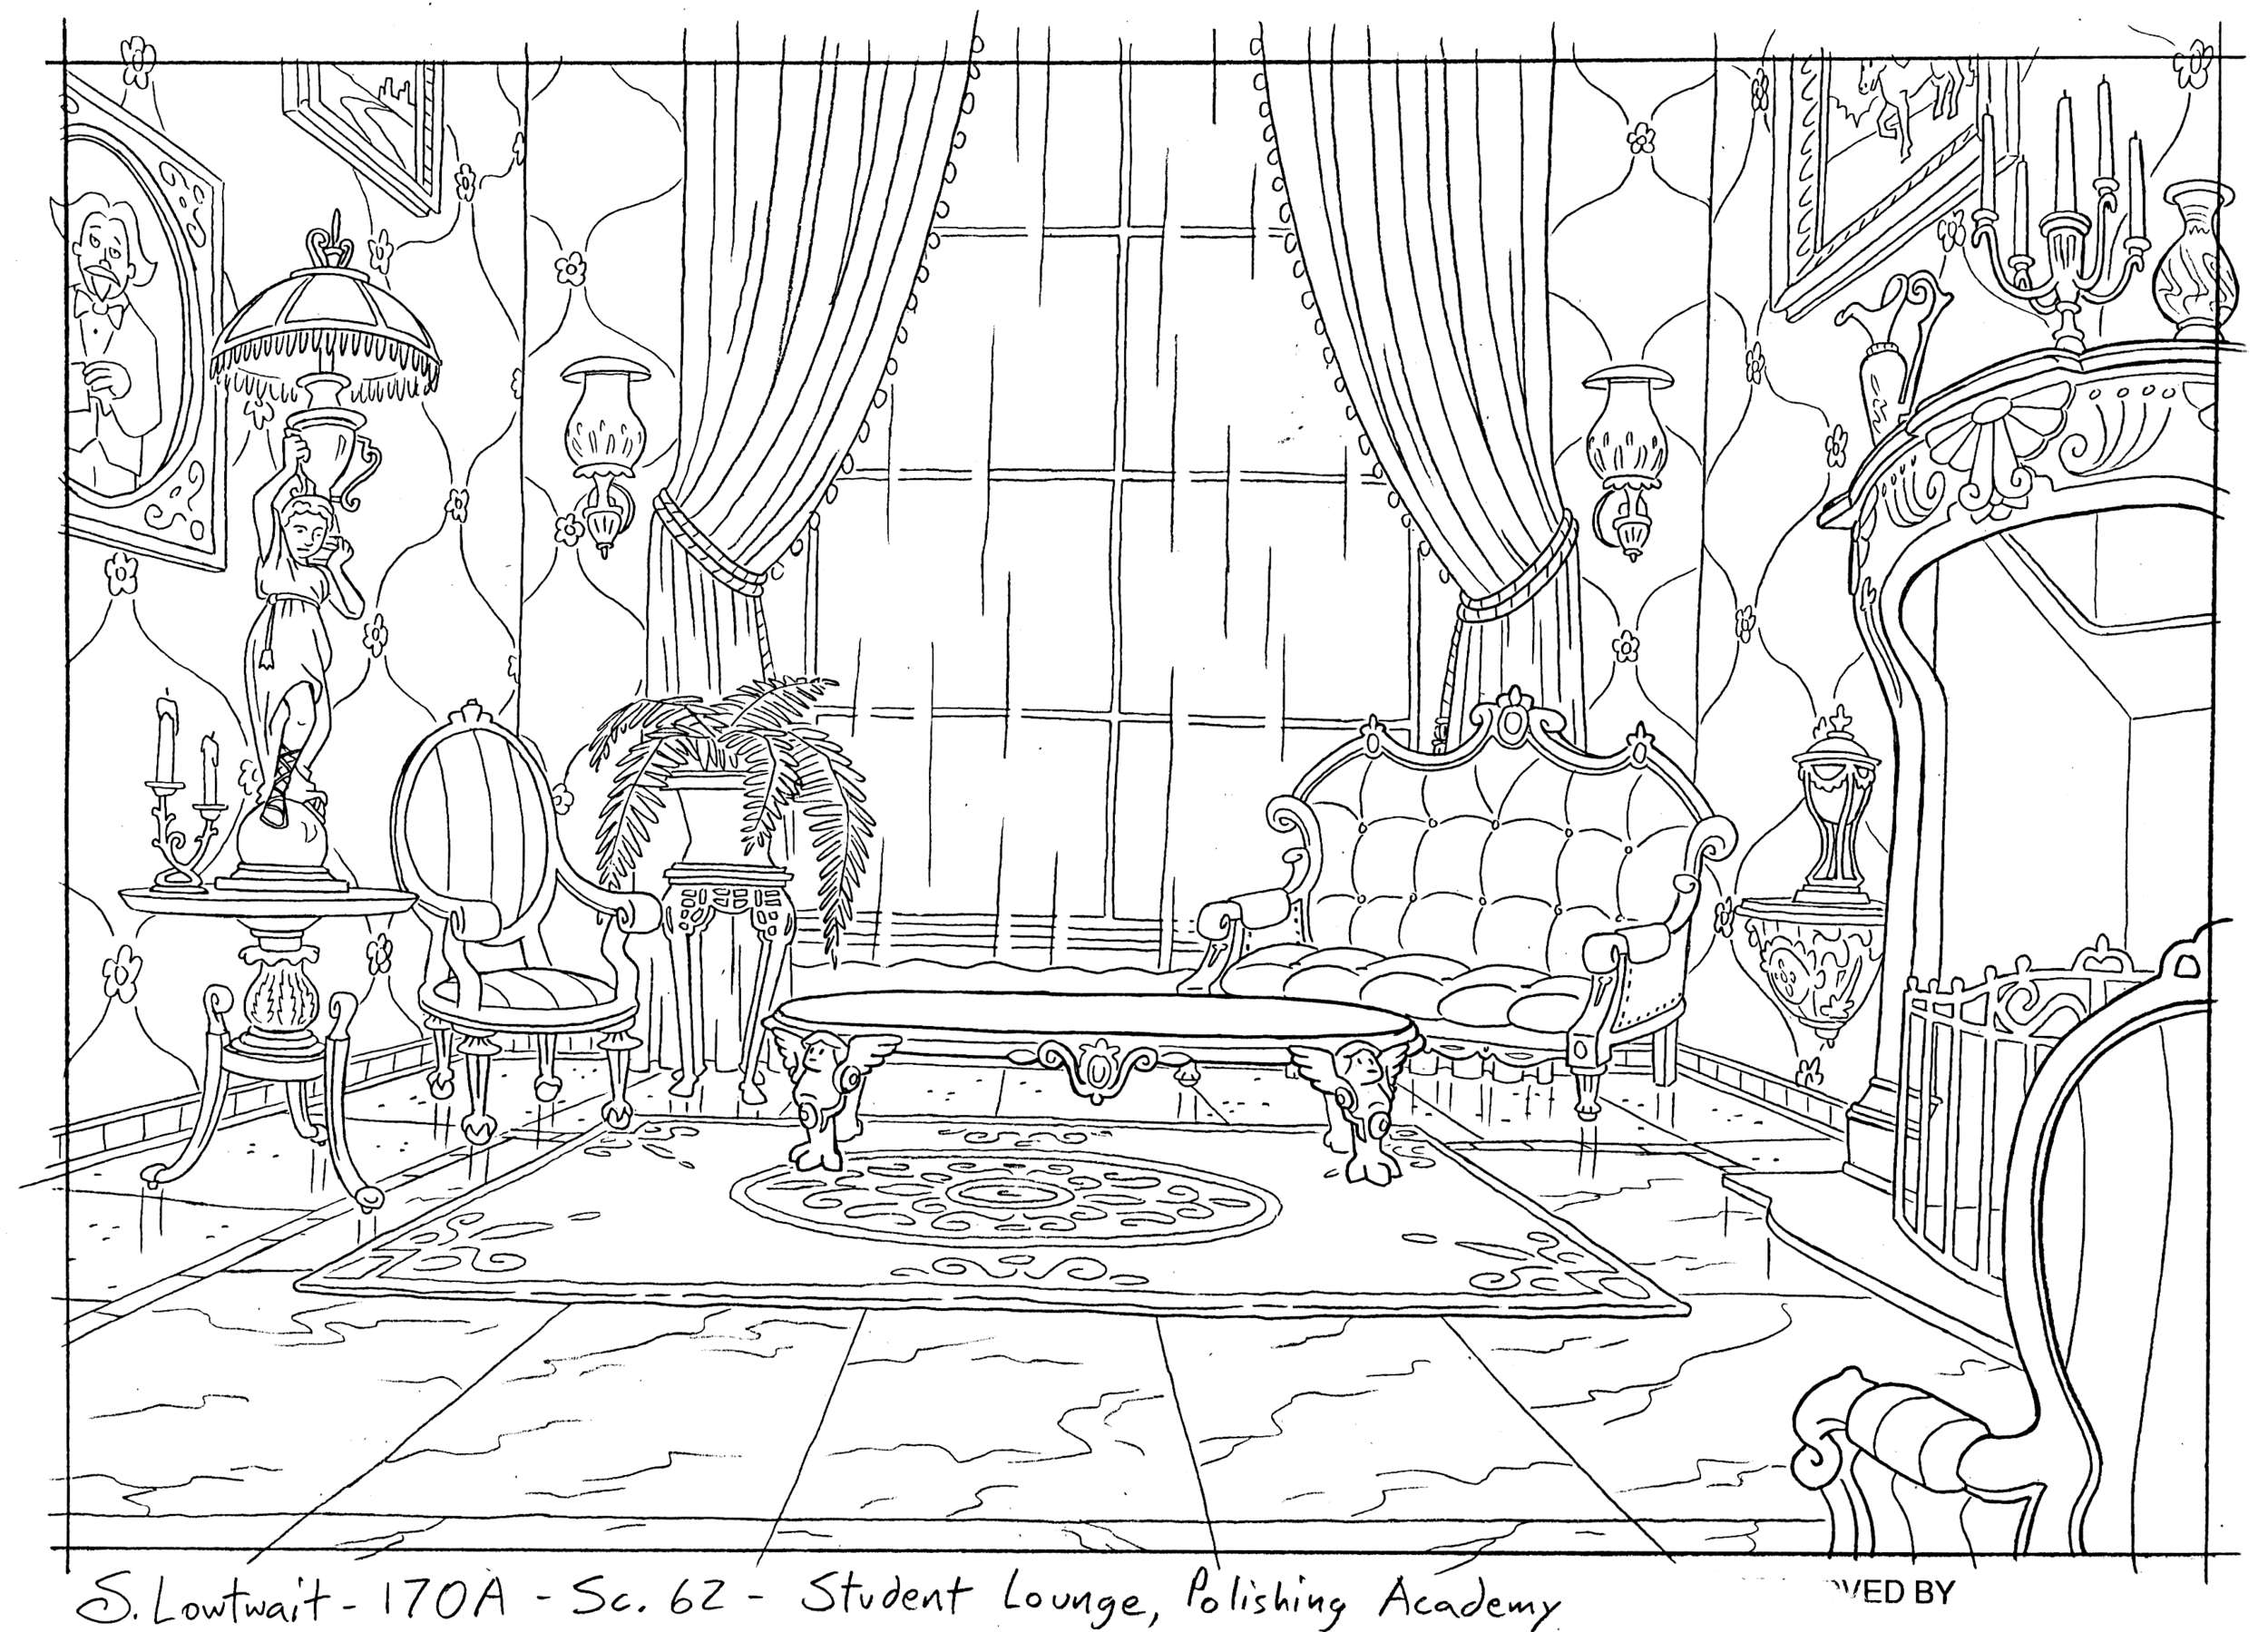 I loved drawing sophisticated, elegant detail as much as I did urban grunge, like in this his high style Victorian lounge.